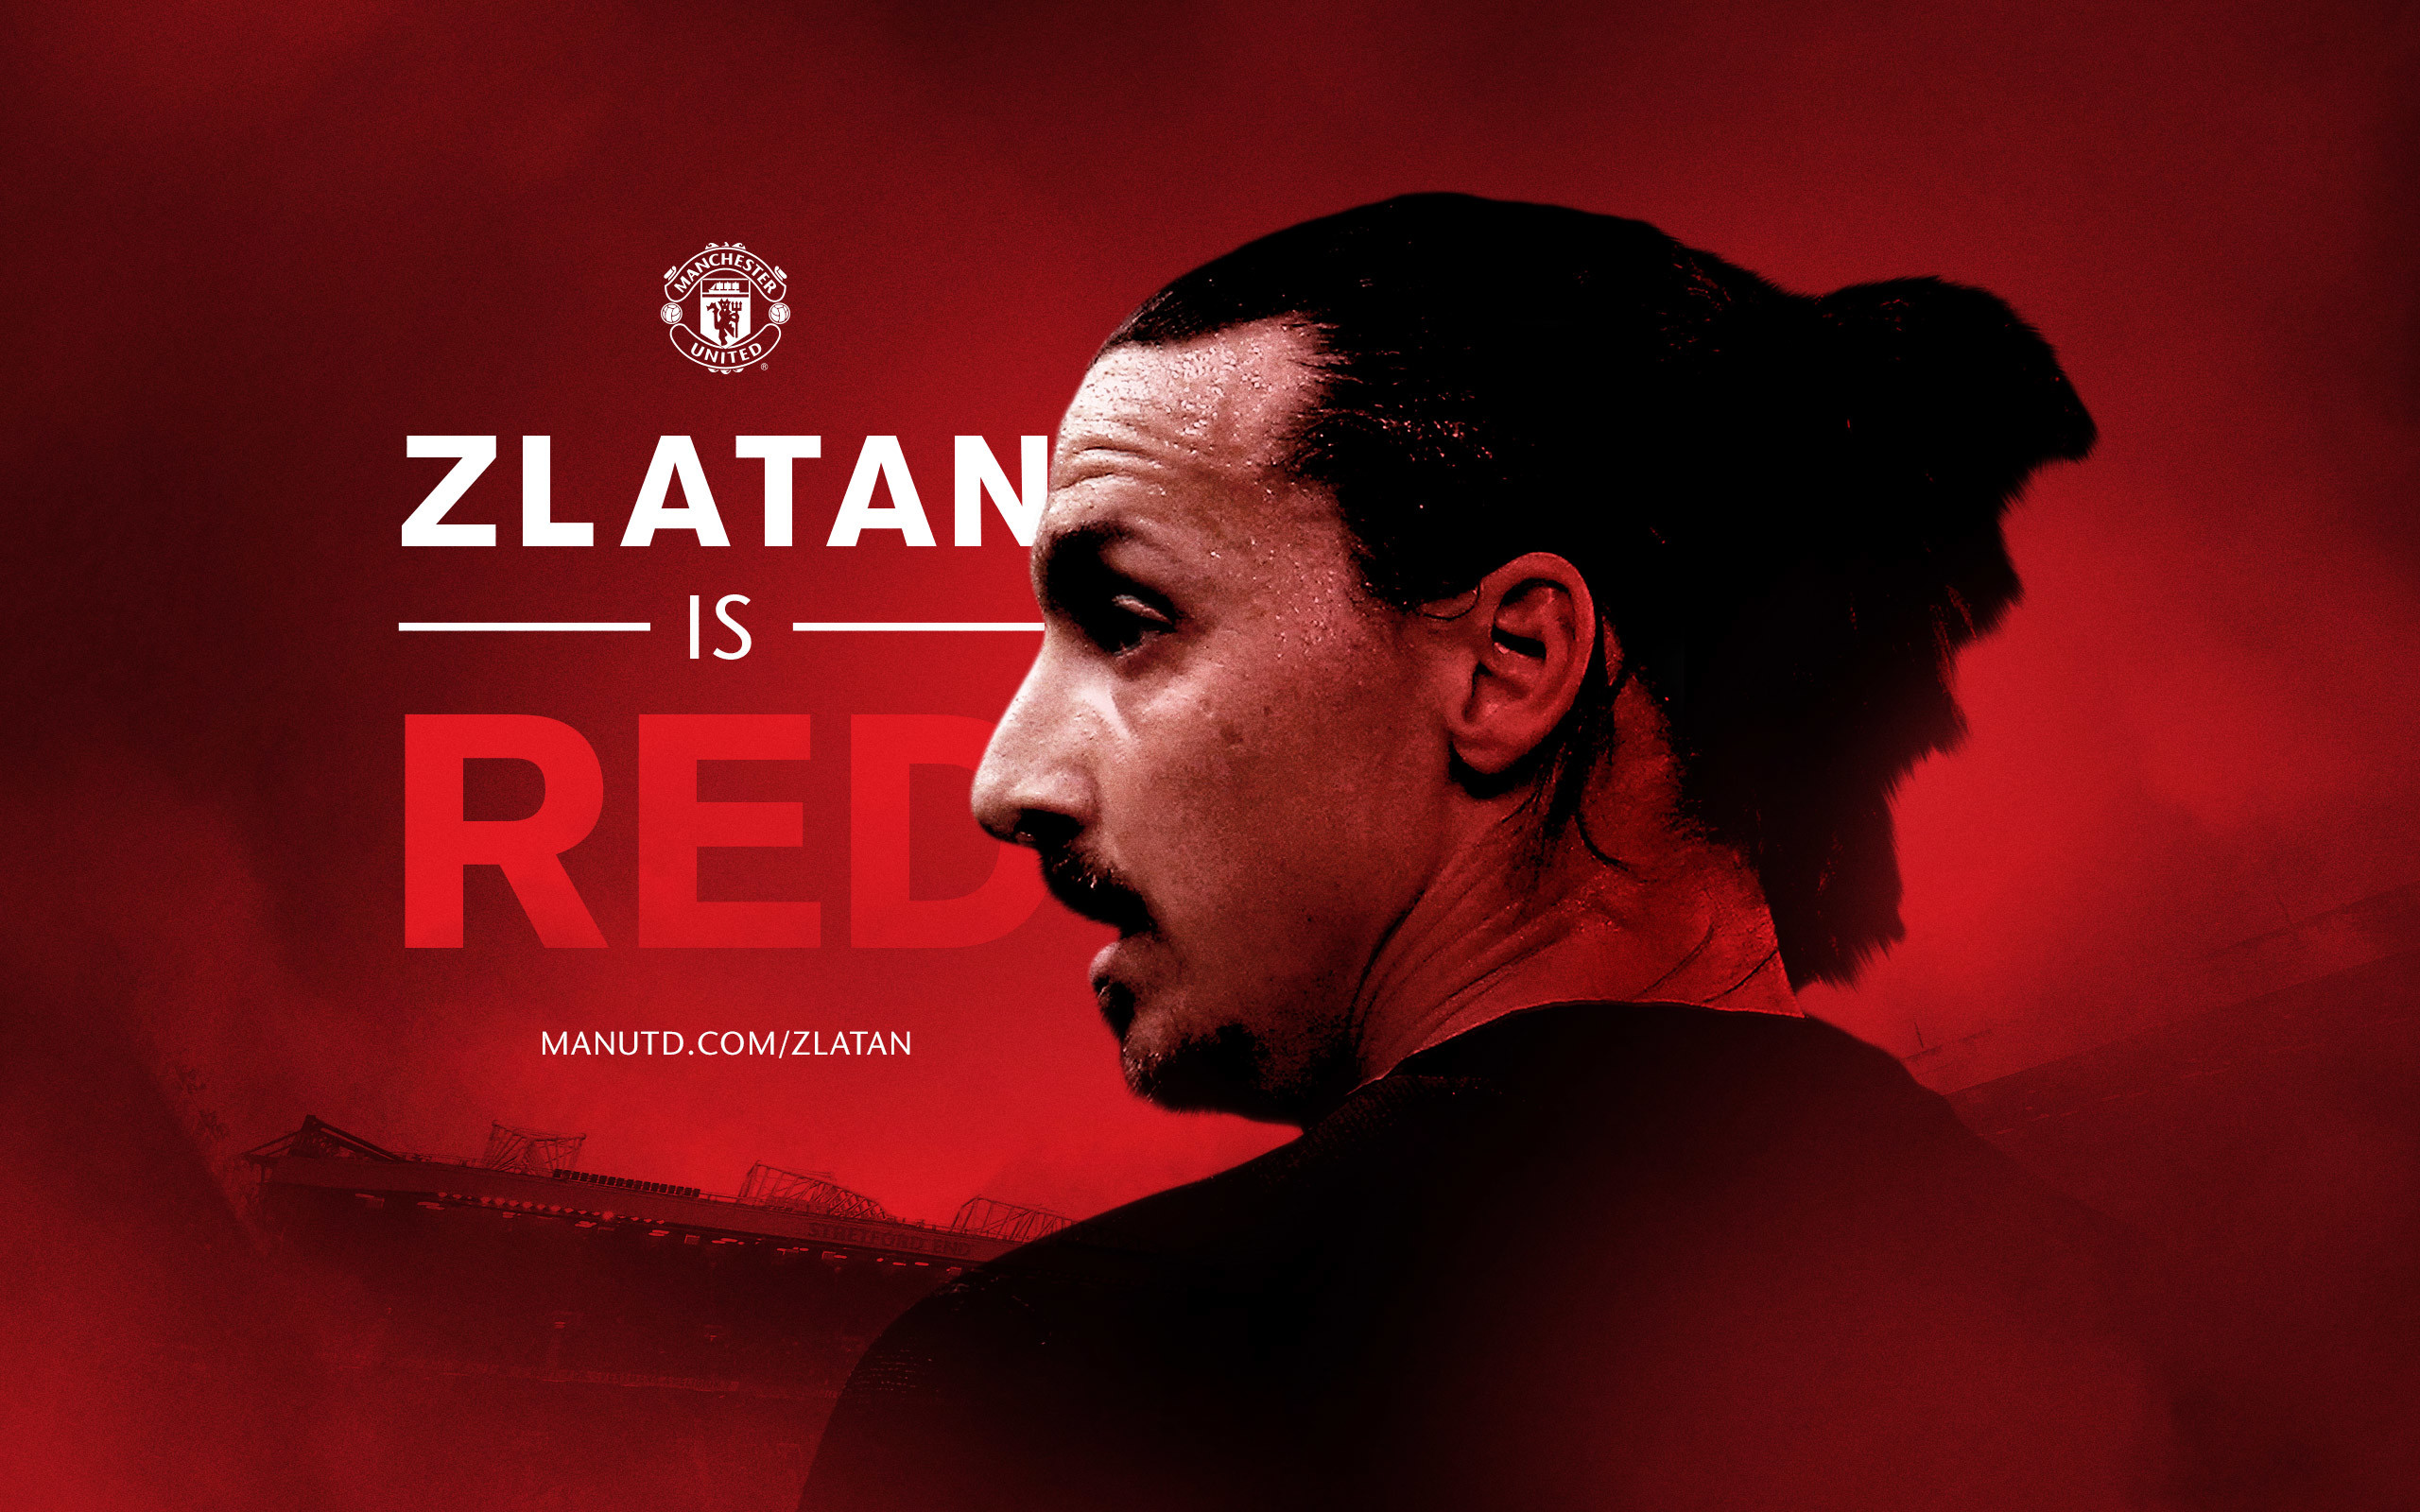 Manchester United Wallpaper Iphone X Manchester United Wallpaper Hd 2018 67 Images